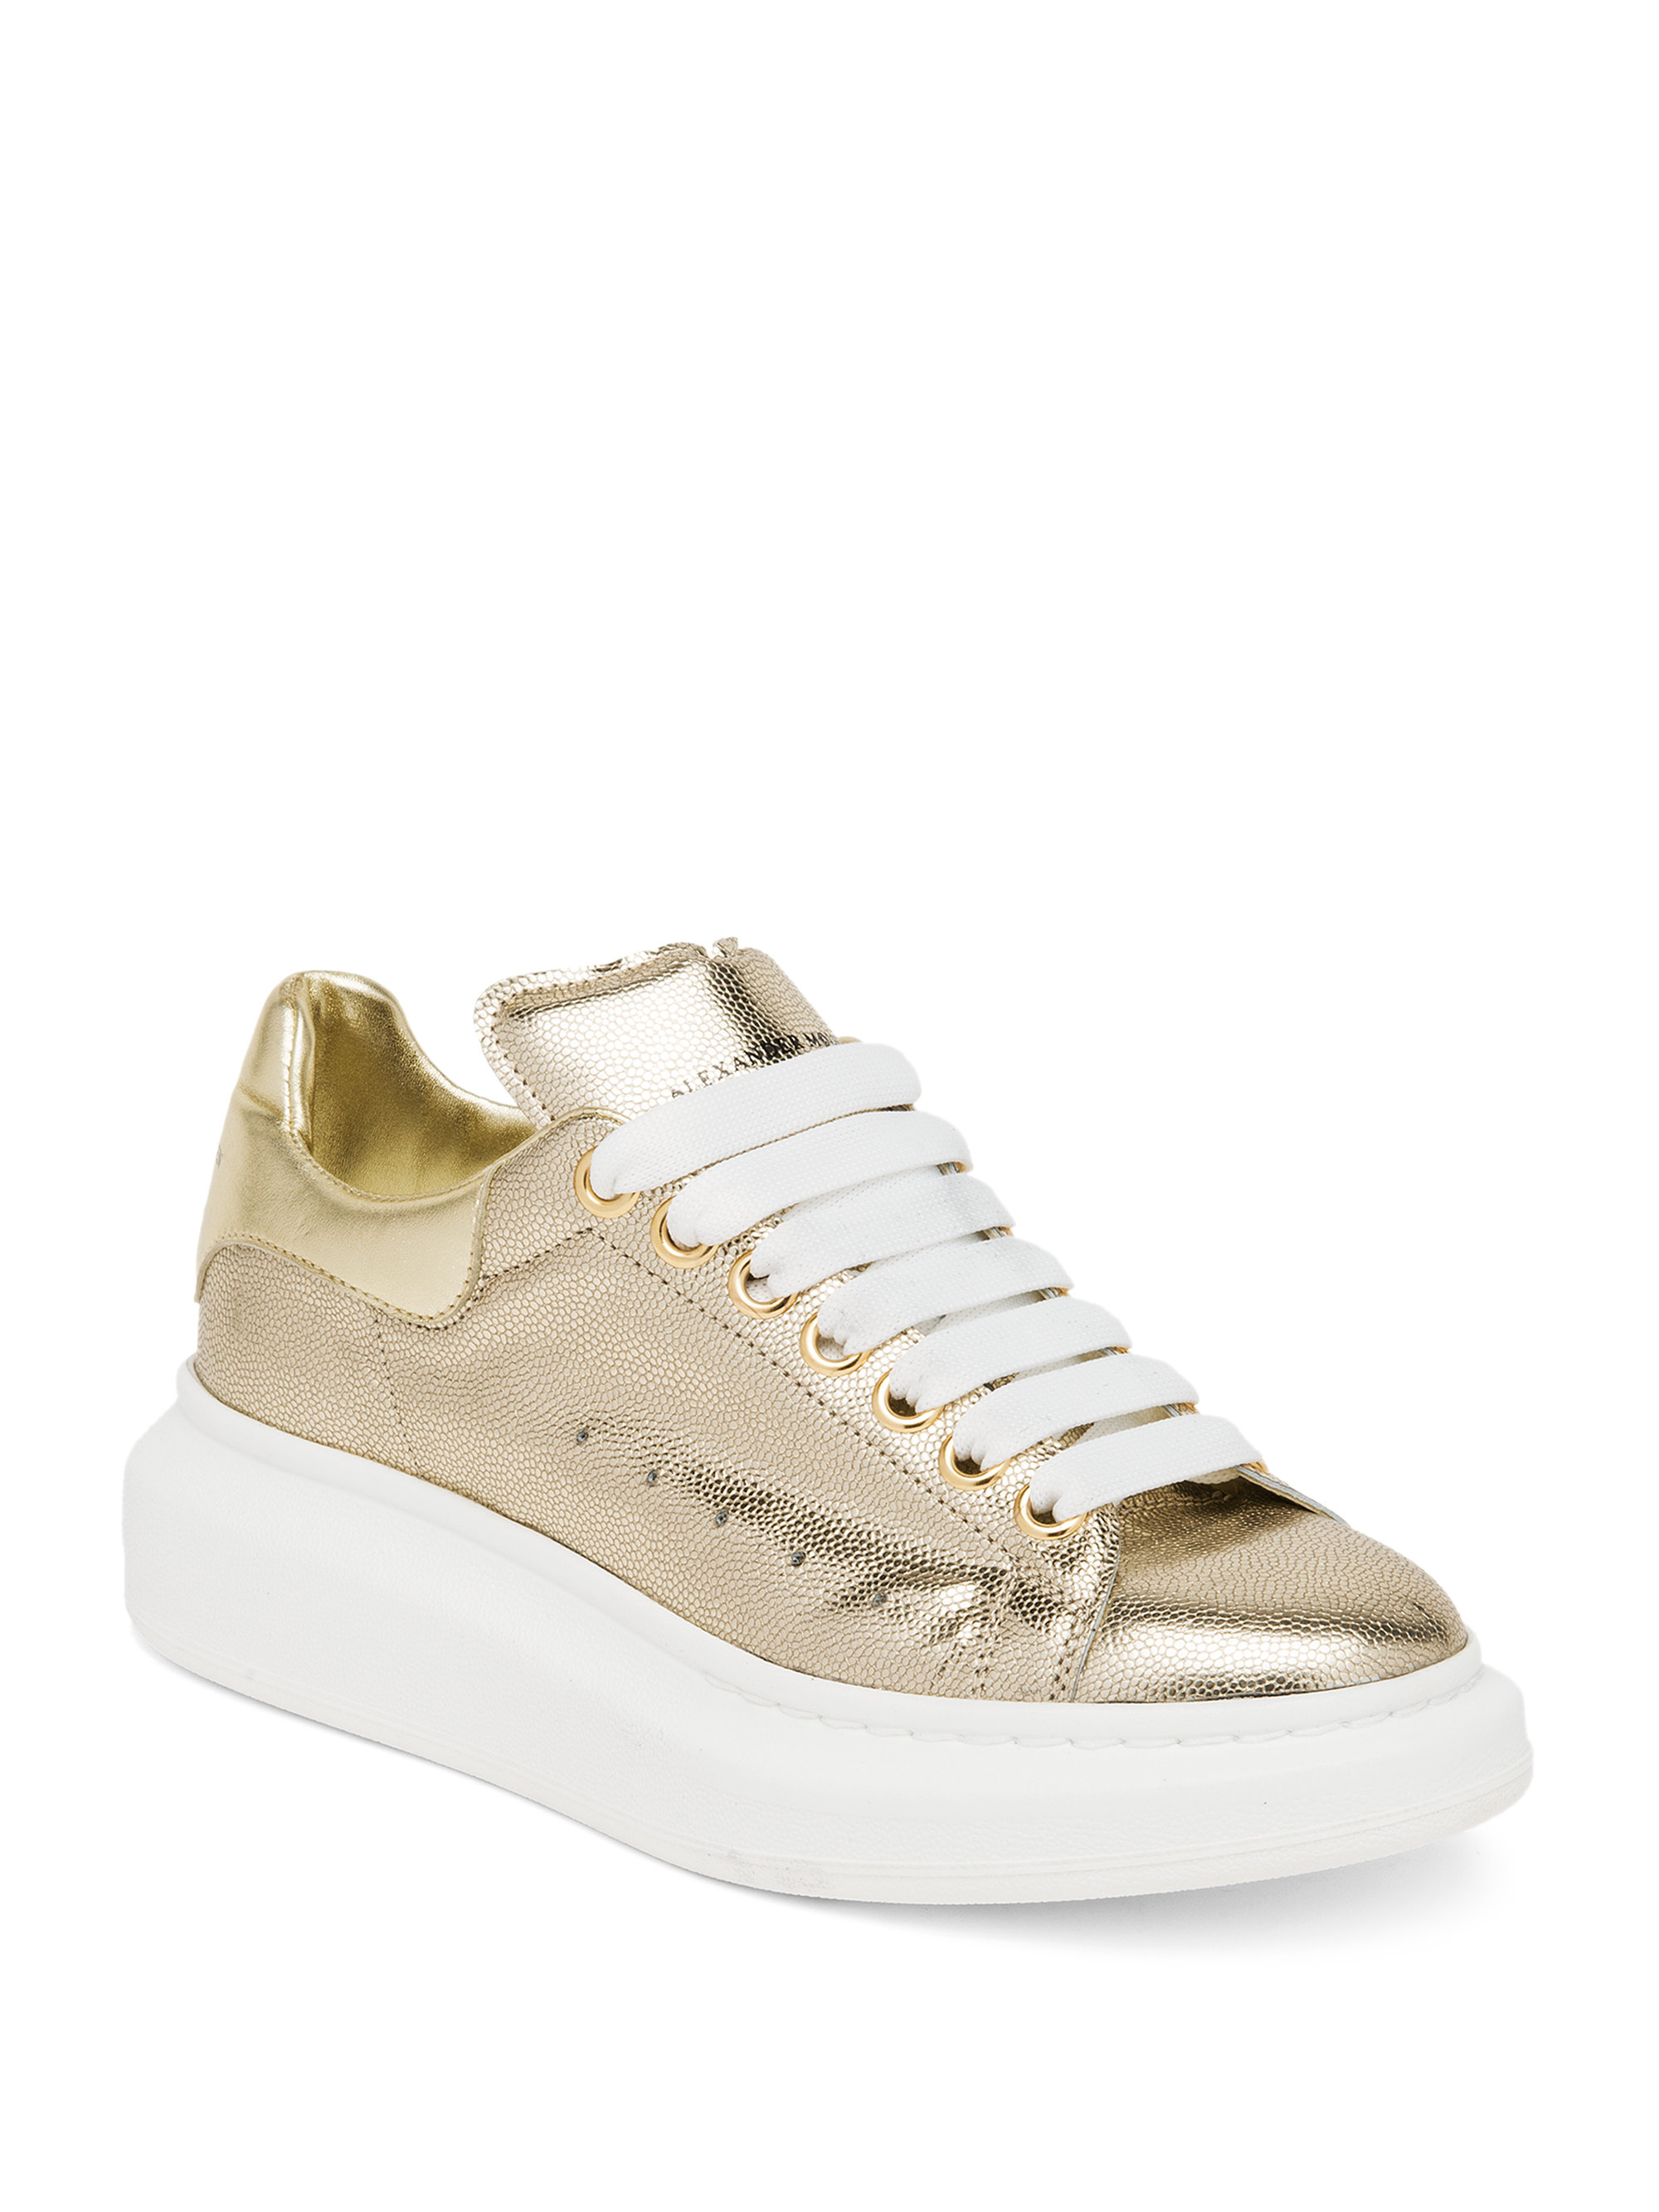 lyst alexander mcqueen embossed metallic leather platform sneakers in metallic. Black Bedroom Furniture Sets. Home Design Ideas